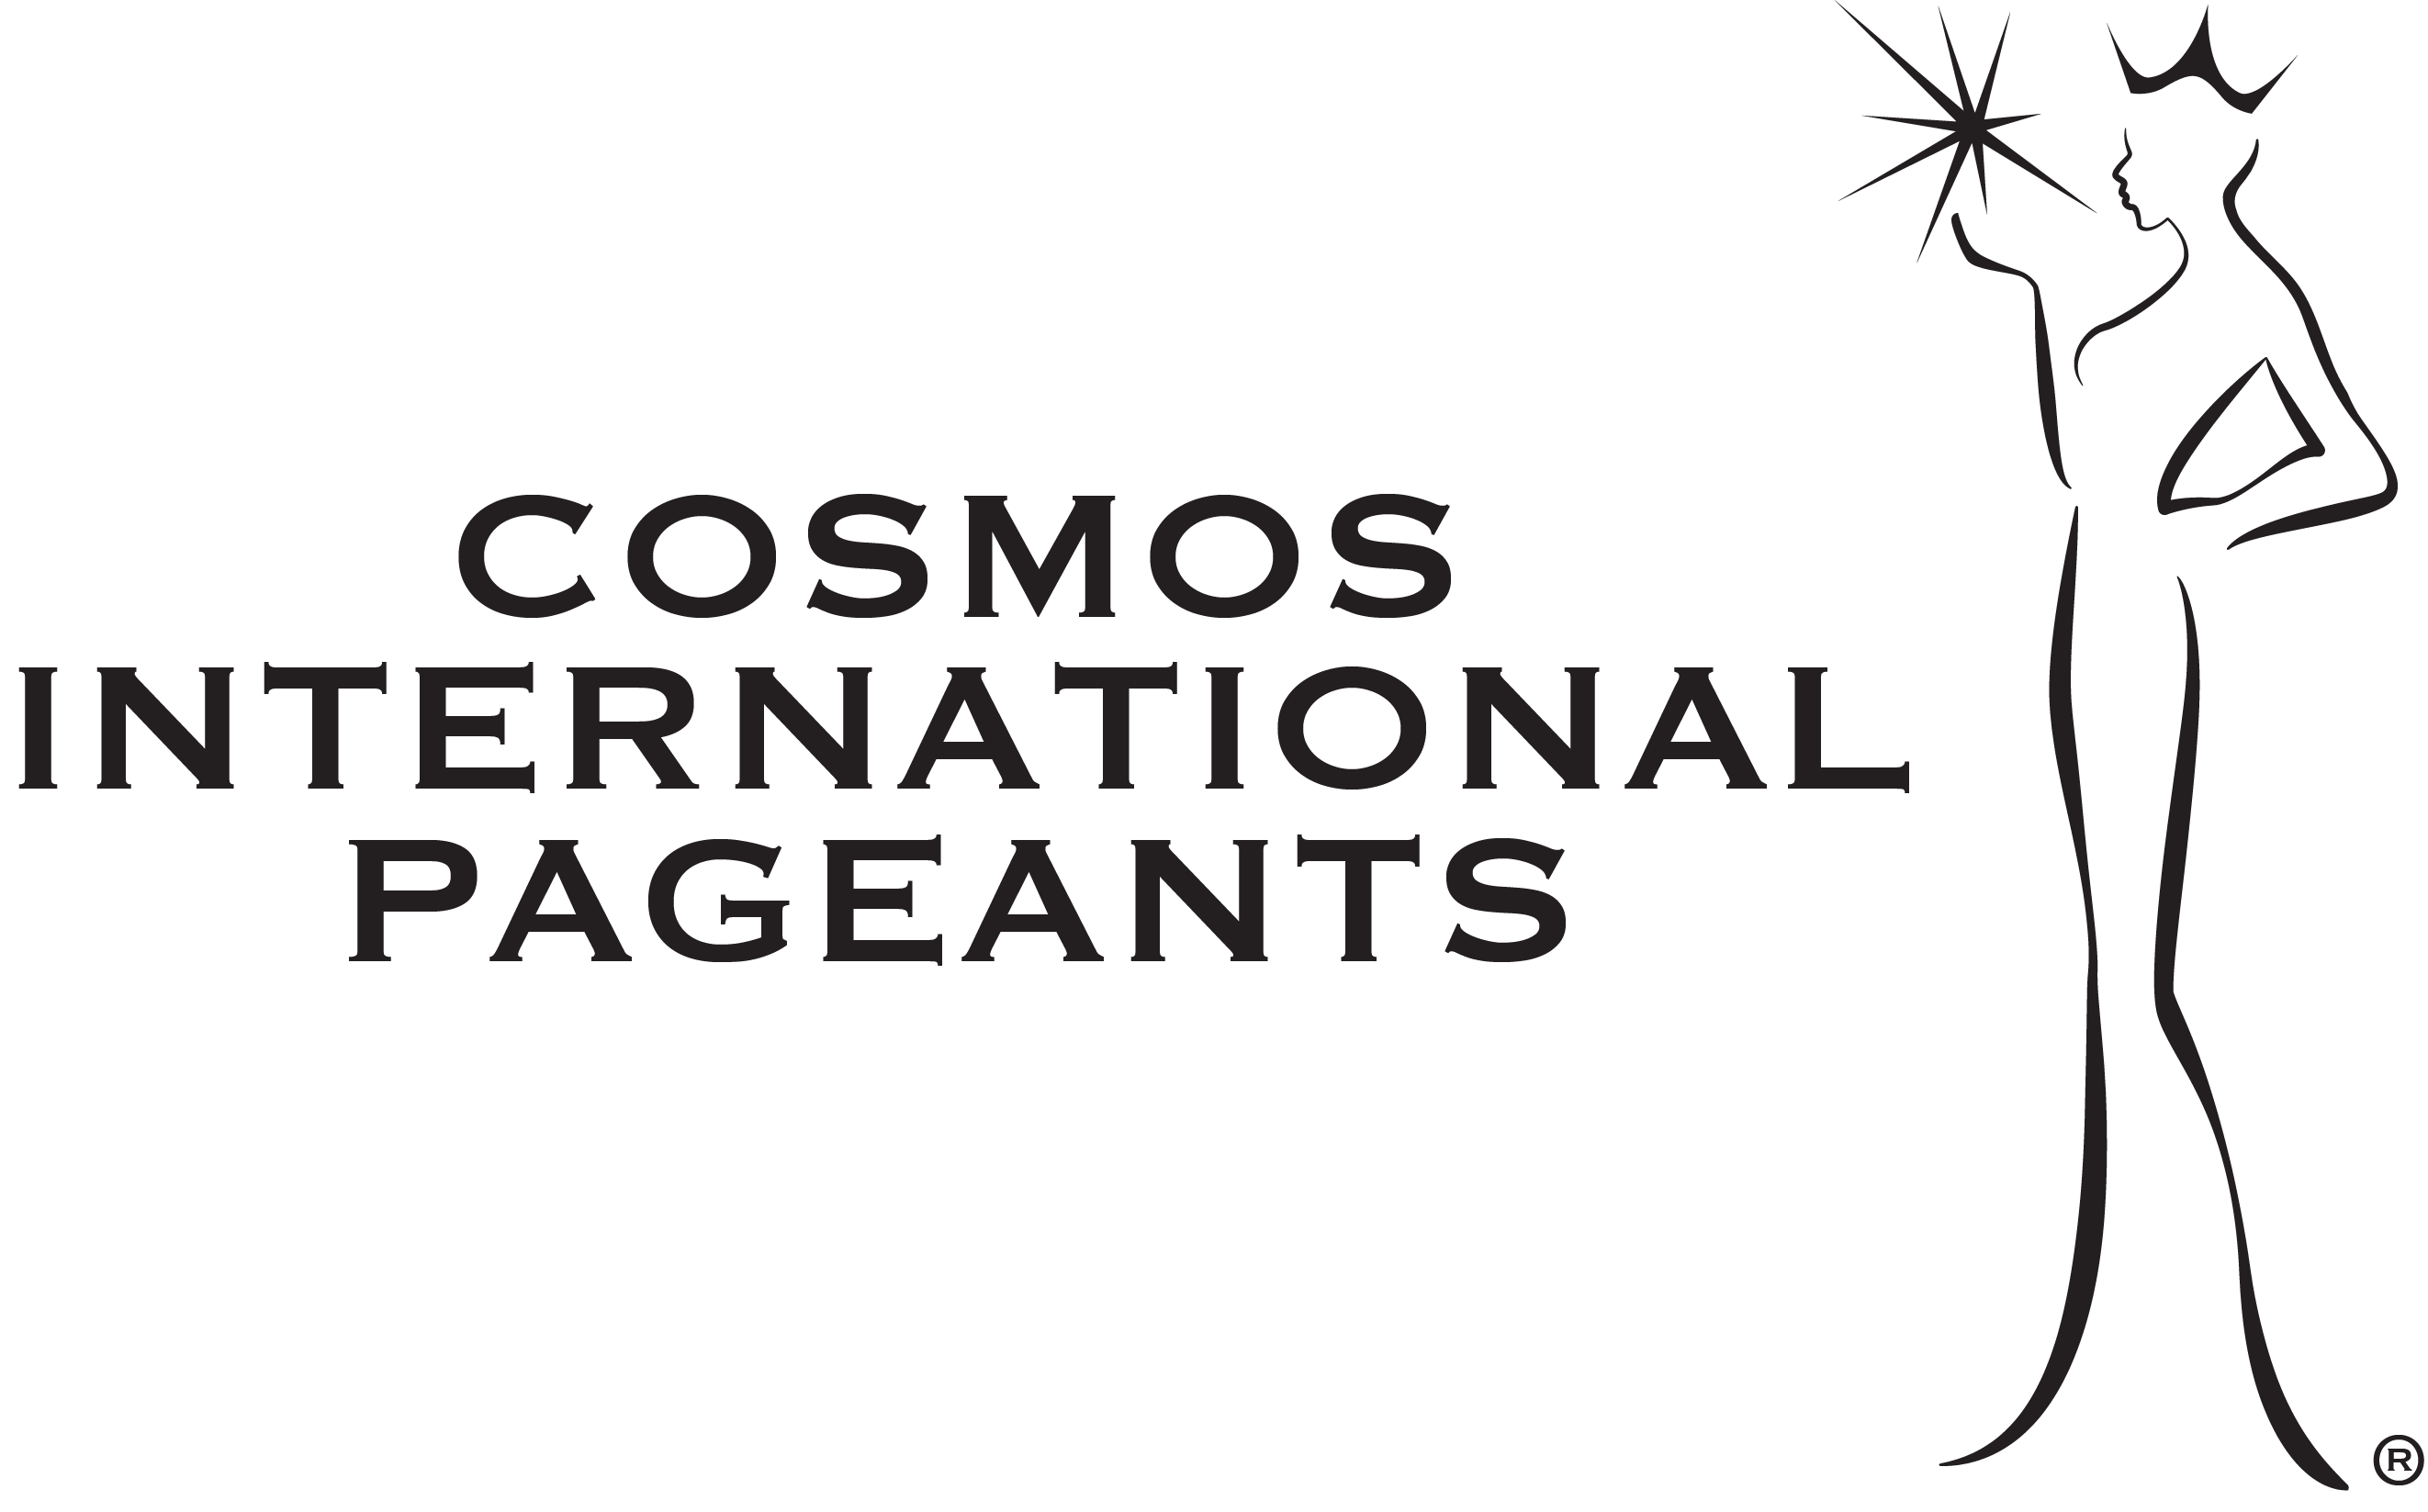 Cosmos International Pageants